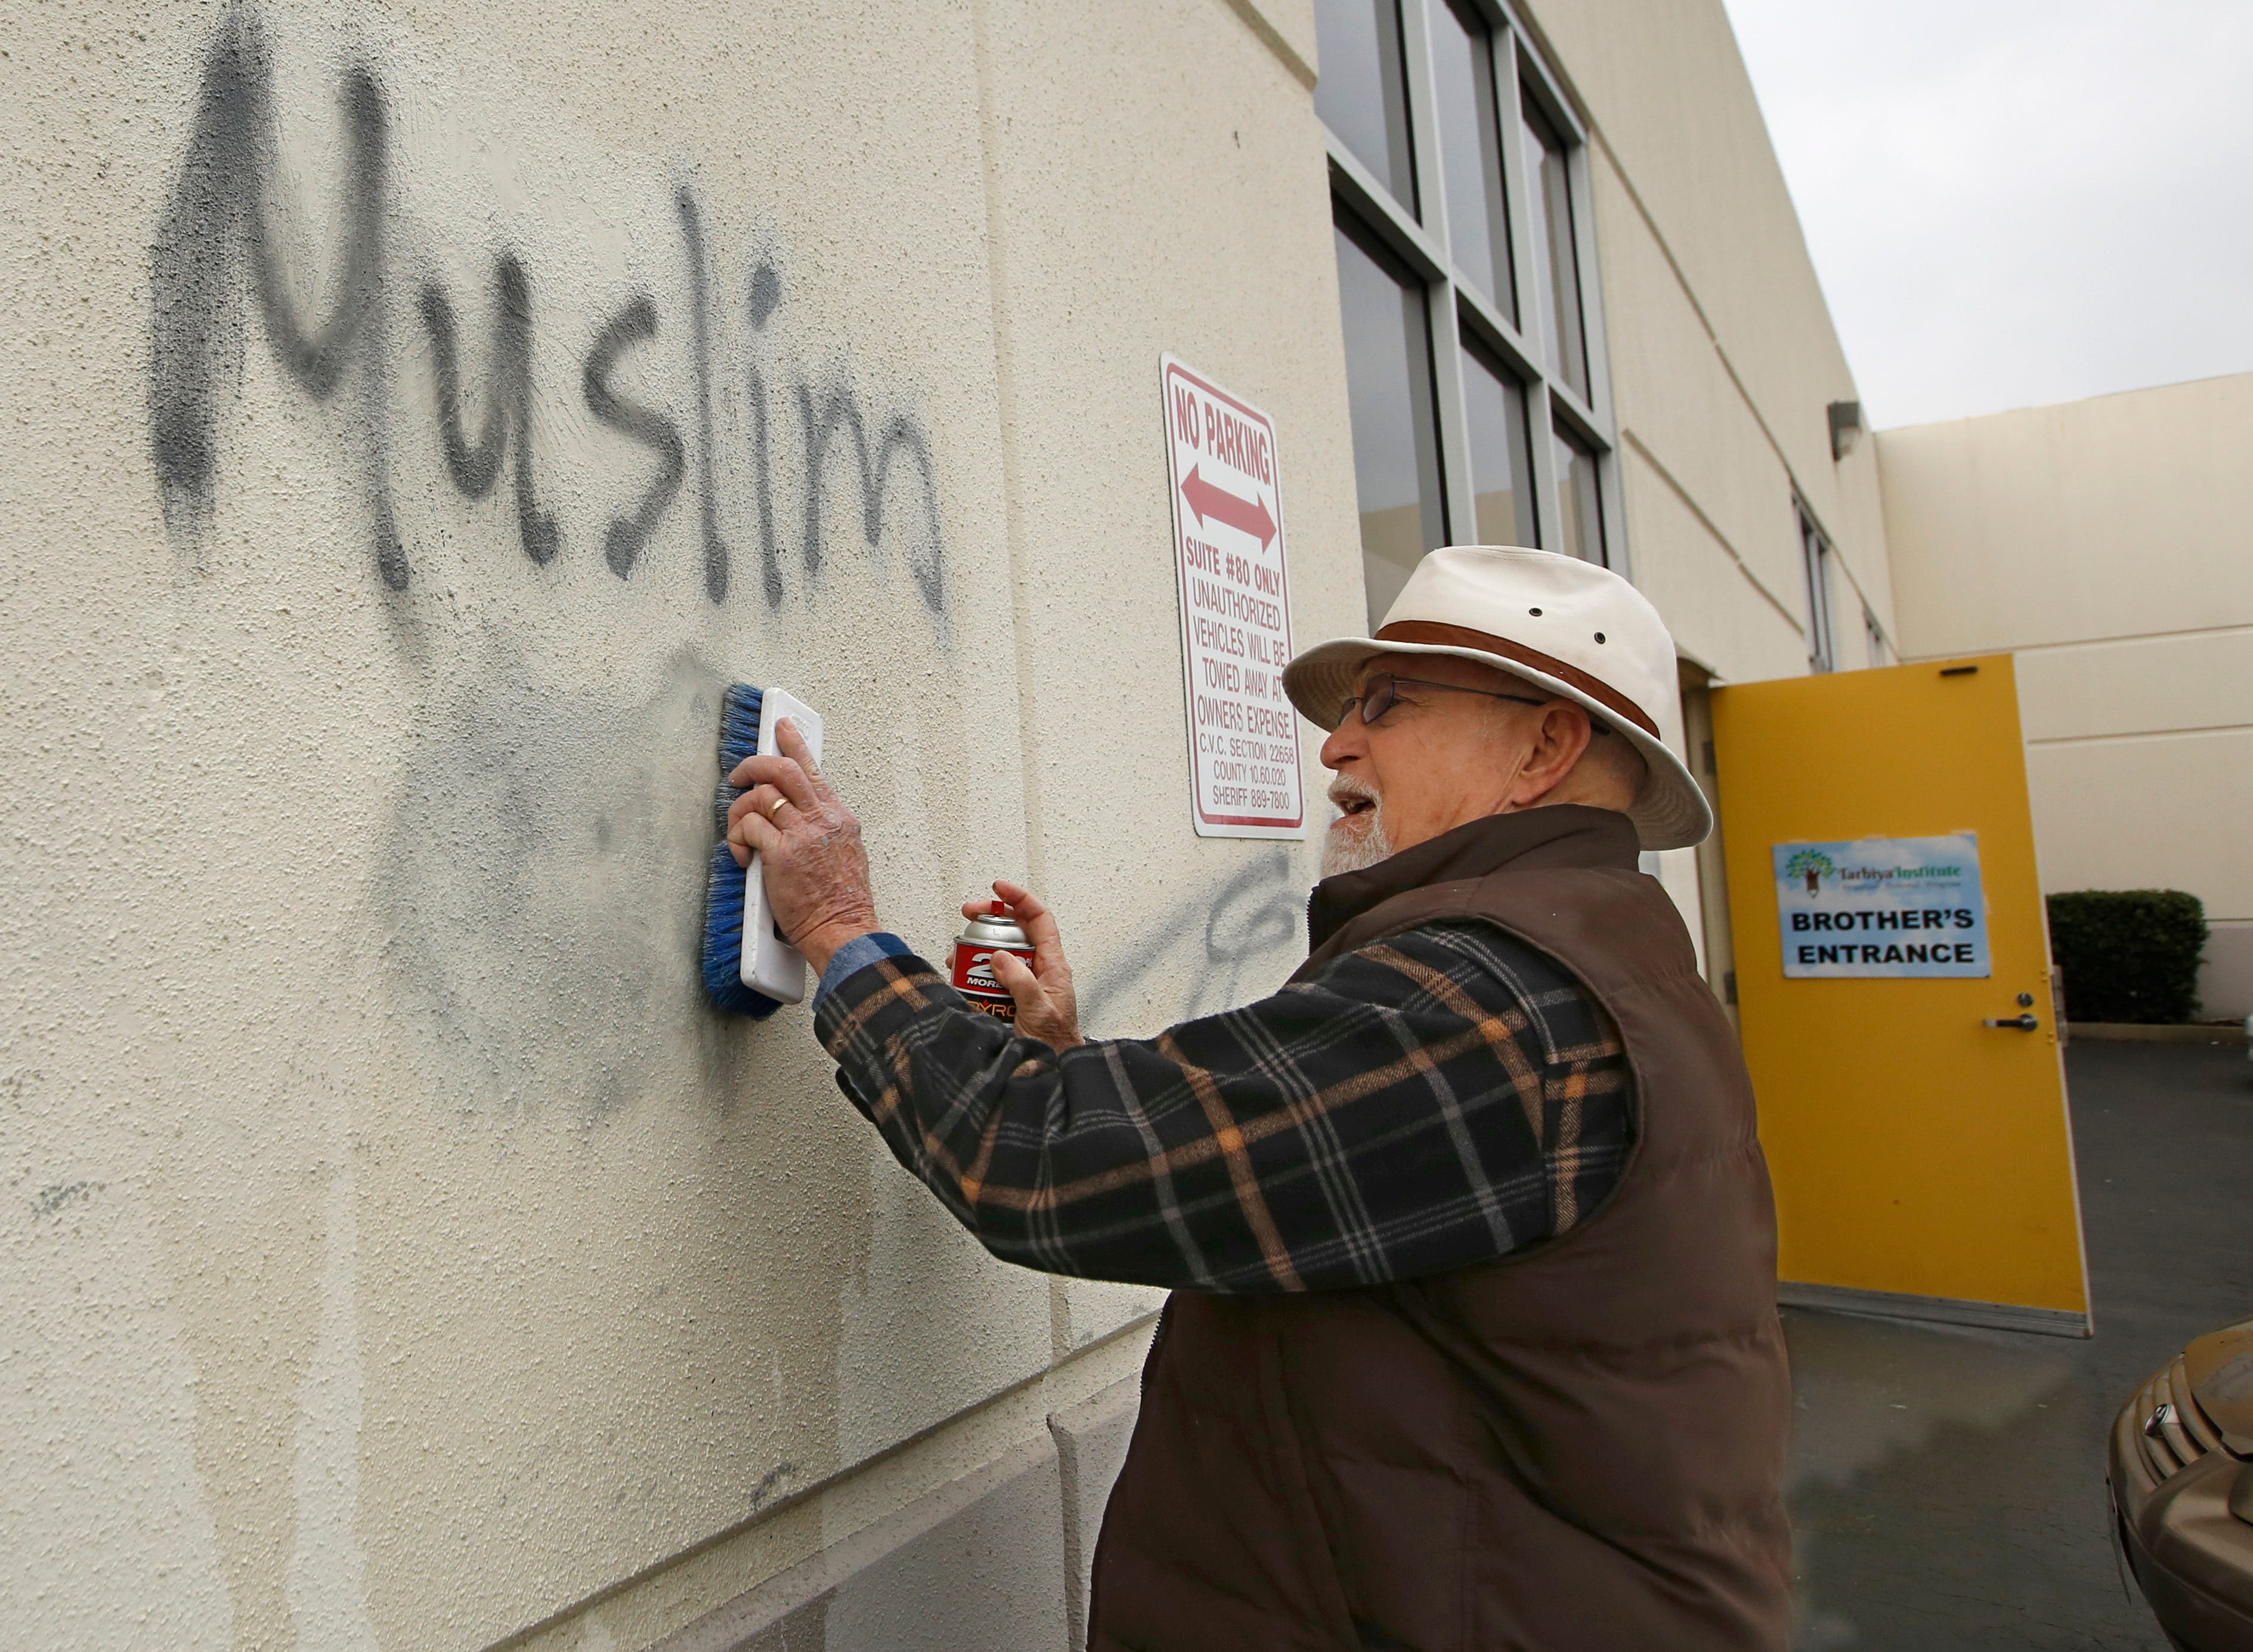 Hate crimes are up in America's 10 largest cities. Here's why